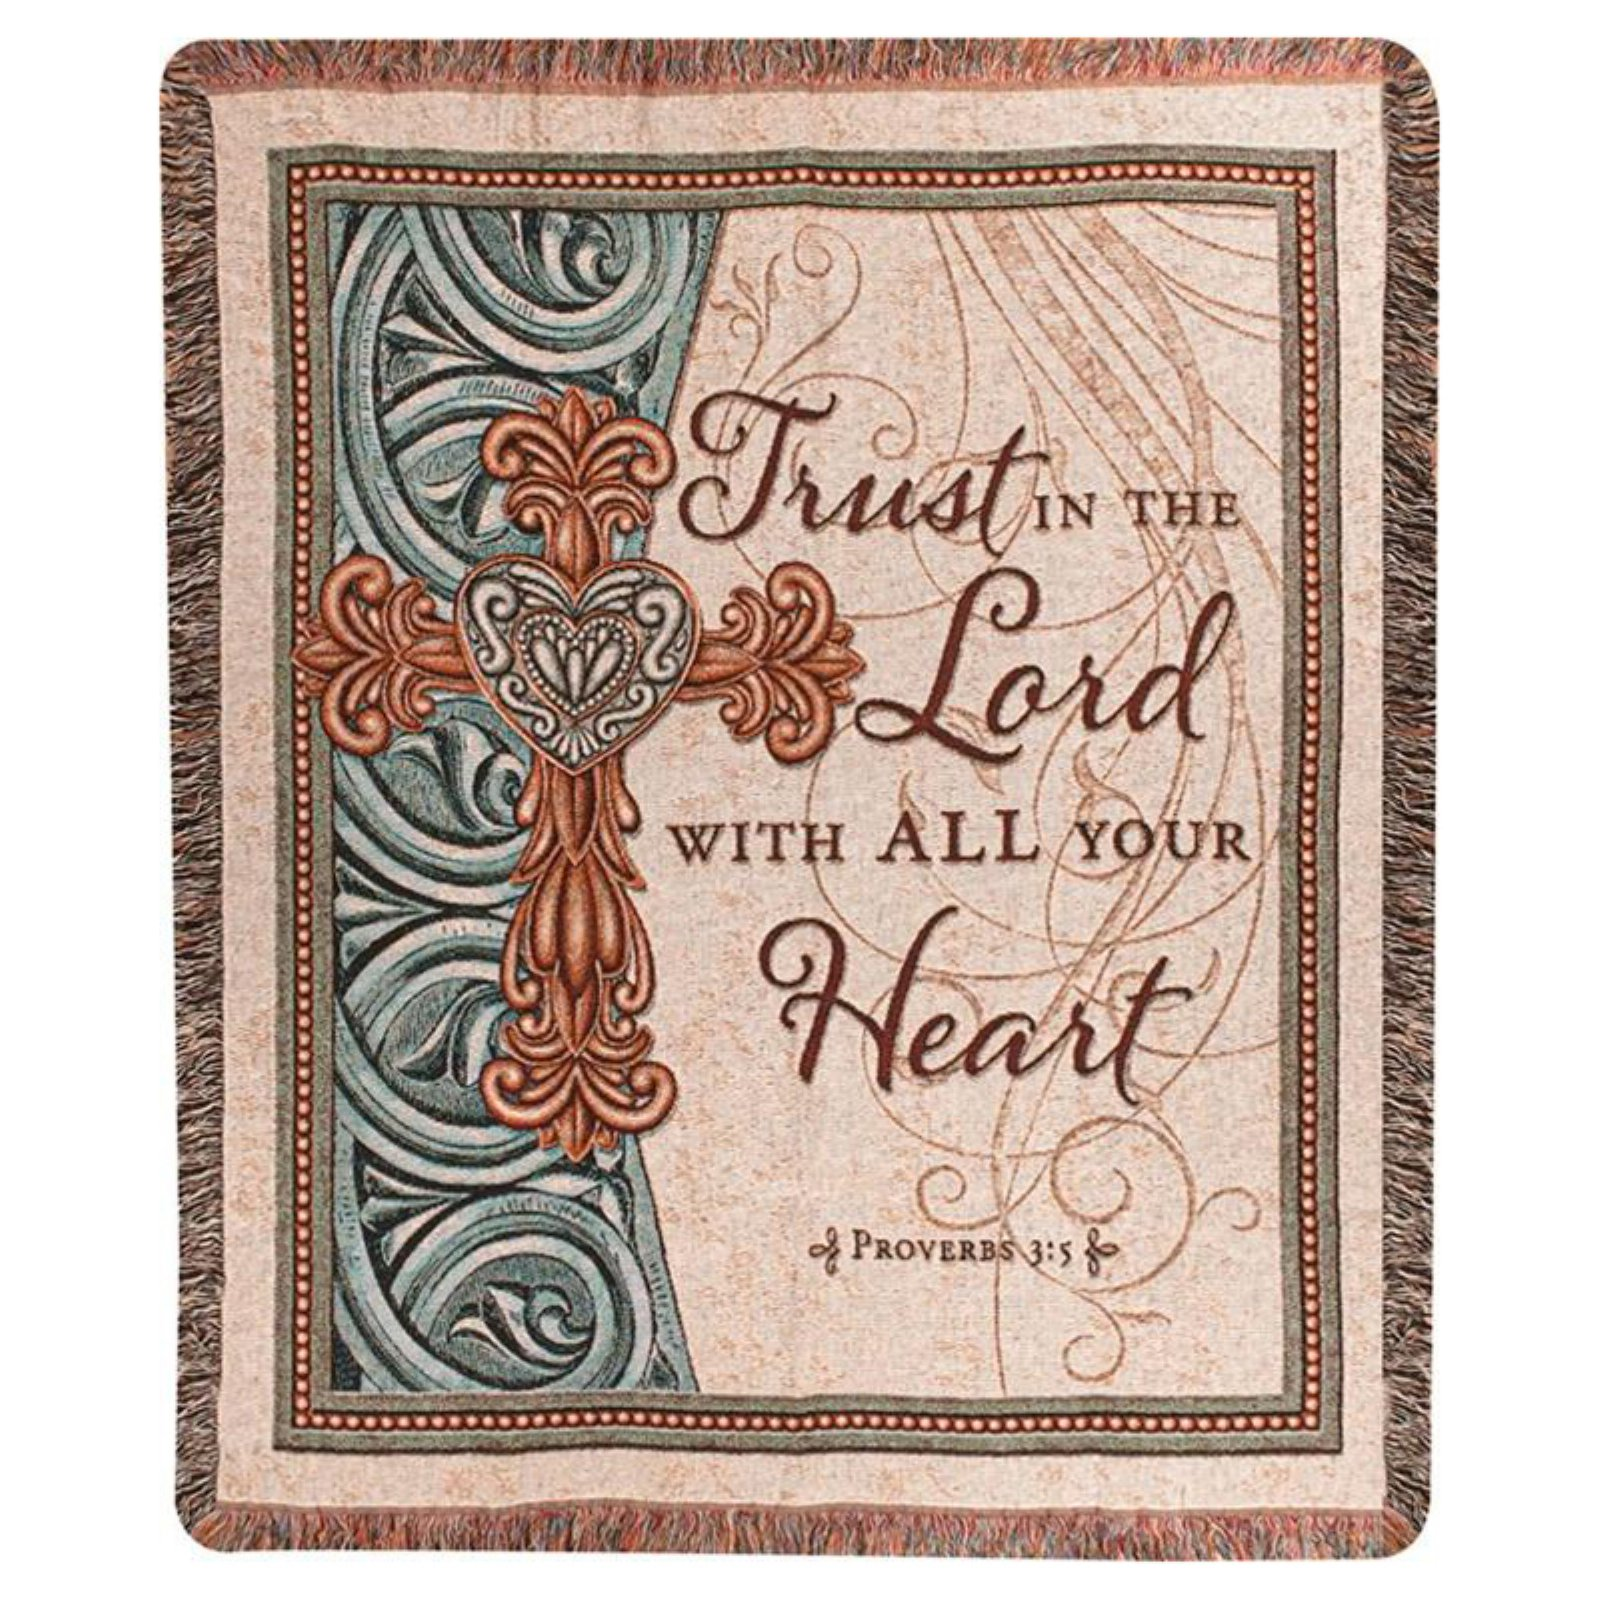 Manual Trust in the Lord Tapestry Throw